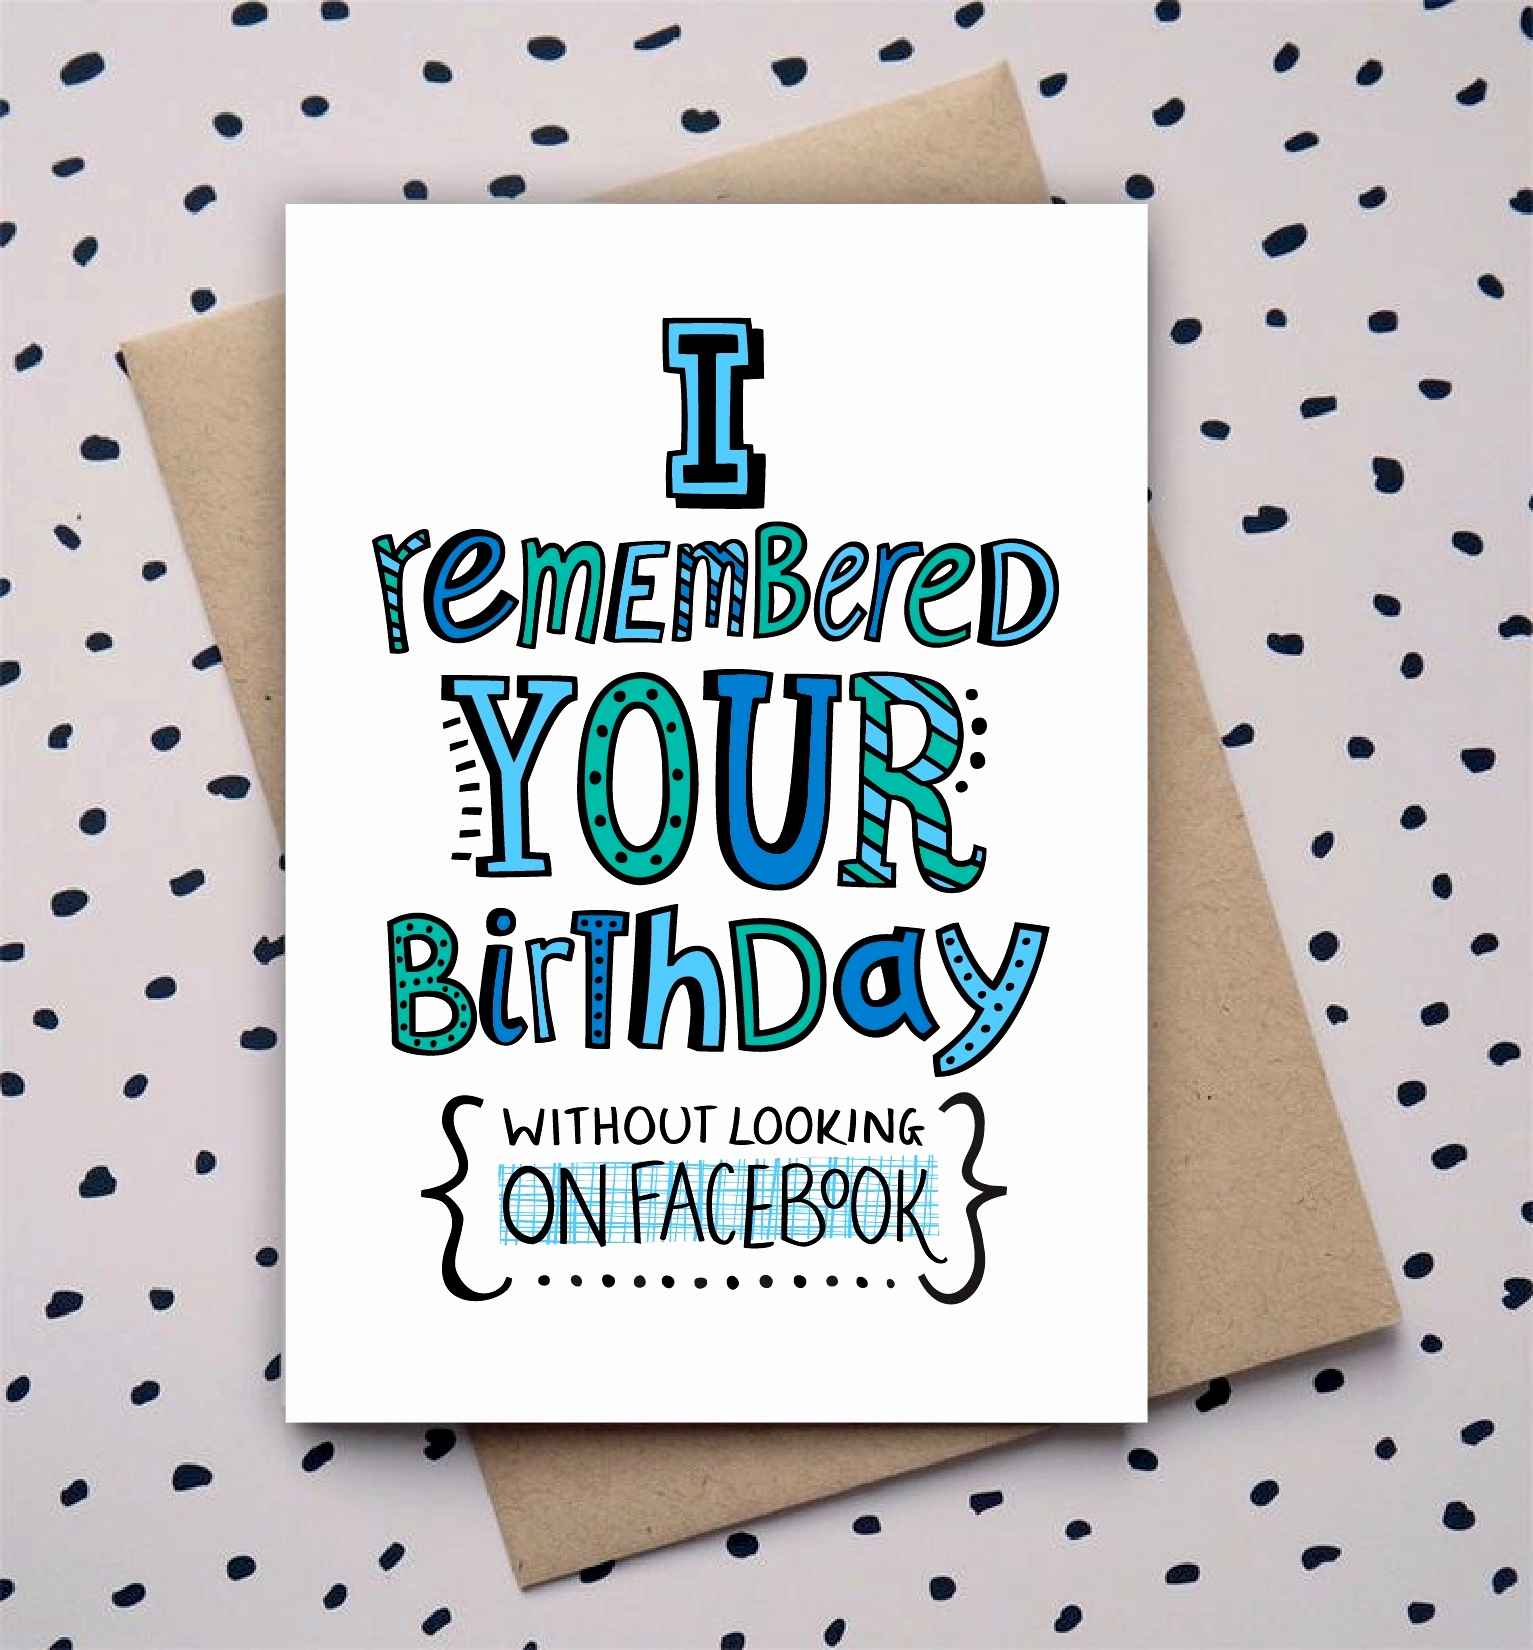 Birthday Card Ideas For Dad From Daughter Cute Birthday Card Ideas For Dad Awesome Birthday Card Ideas For Dad